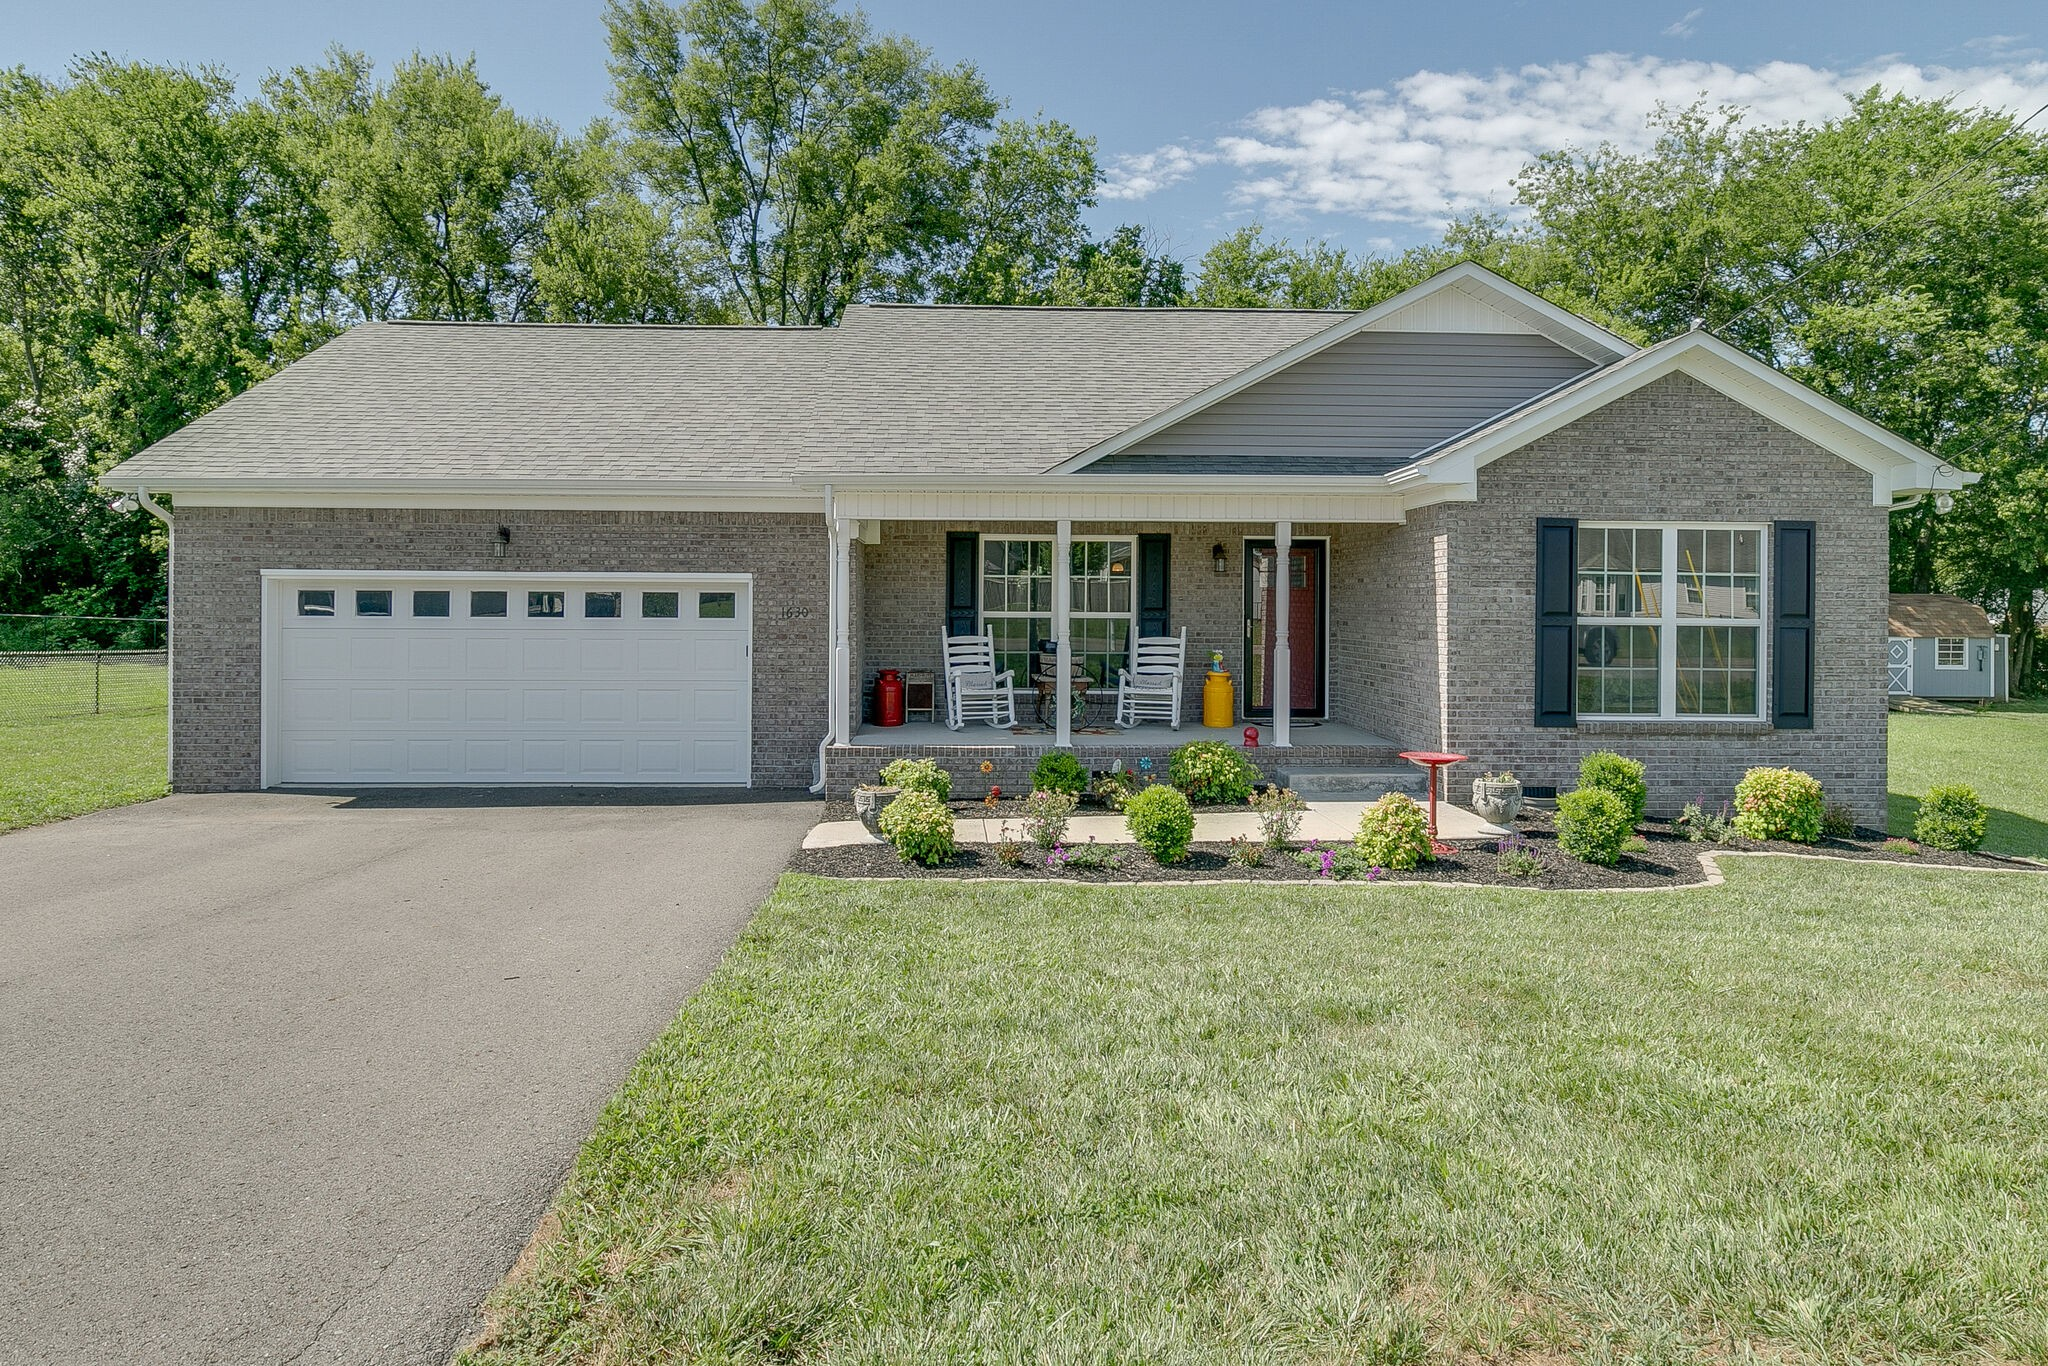 AS GOOD AS NEW~FALL IN LOVE WITH THIS 2 YR OLD HOME WITH A OPEN FLOOR PLAN~GRAY PAINT~WHITE KITCHEN CABINETS~STAINLESS APPLIANCES~SHIPLAP BACKSPLASH~LARGER LIVING ROOM~FENCED YARD~GARAGE HAS GAS HEAT INSTALLED~INSULATED GARAGE DOORS~MOVE IN READY.